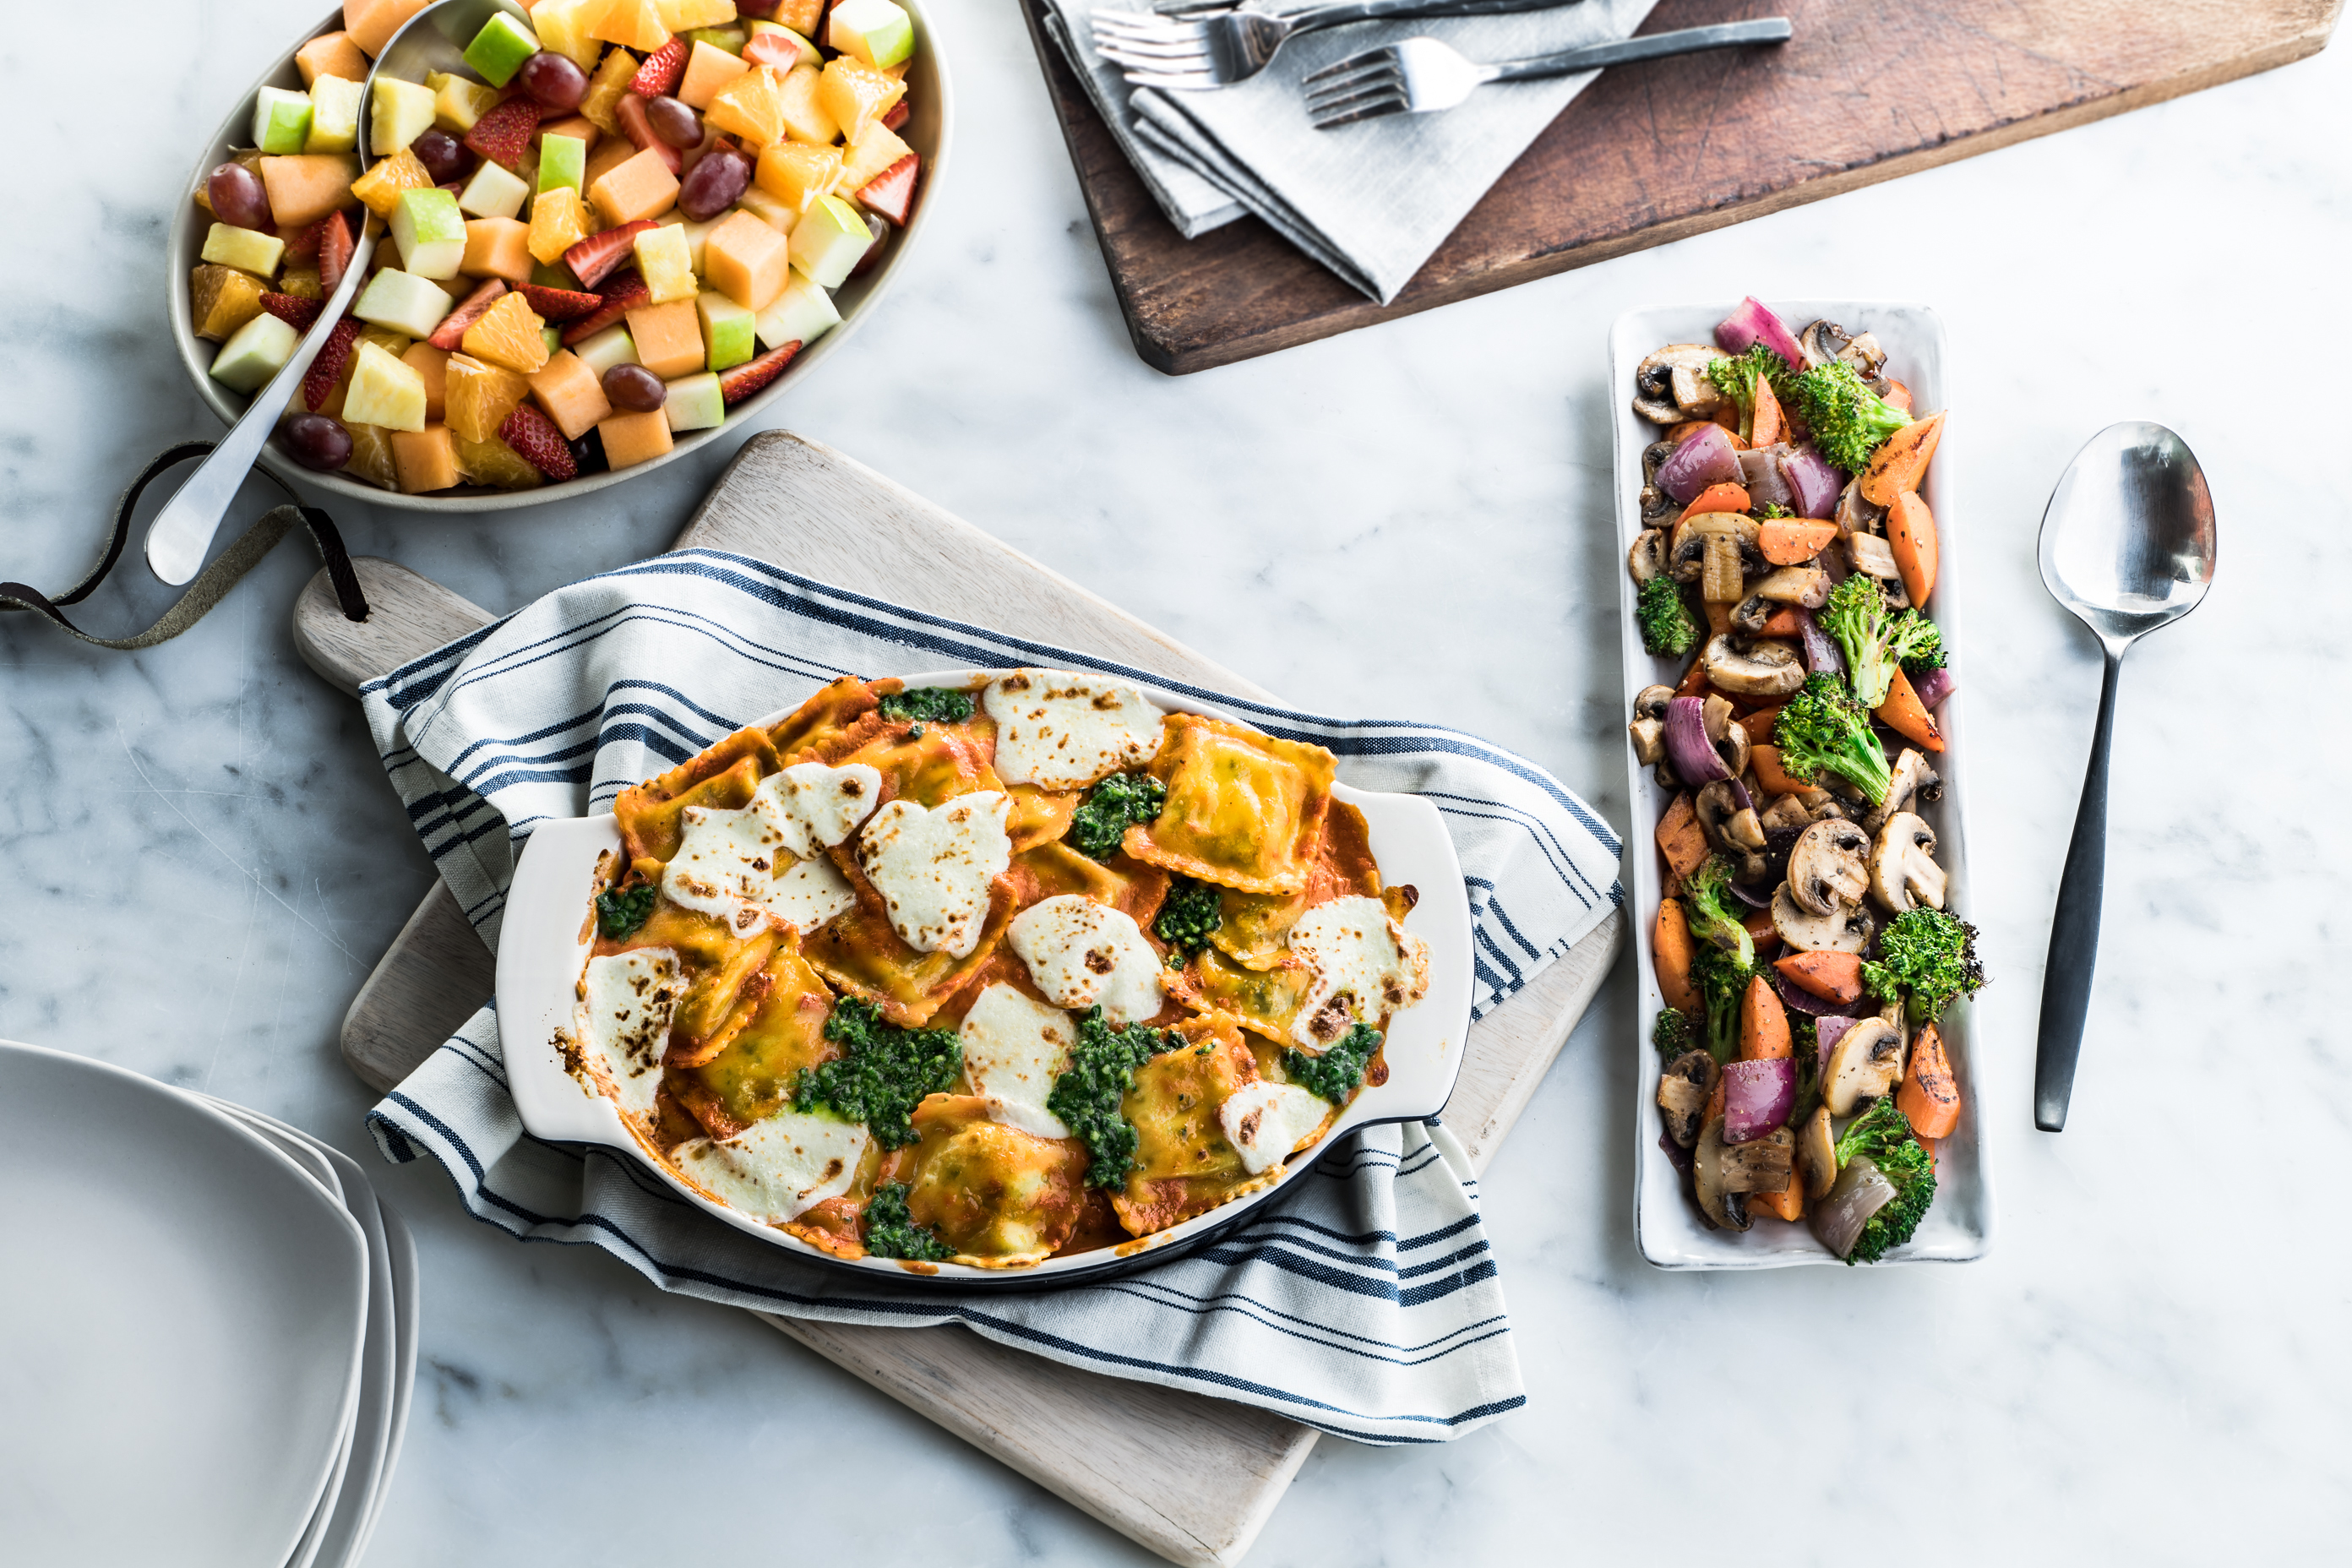 Zoes Kitchen Introduces Baked Falafel And New Mediterranean